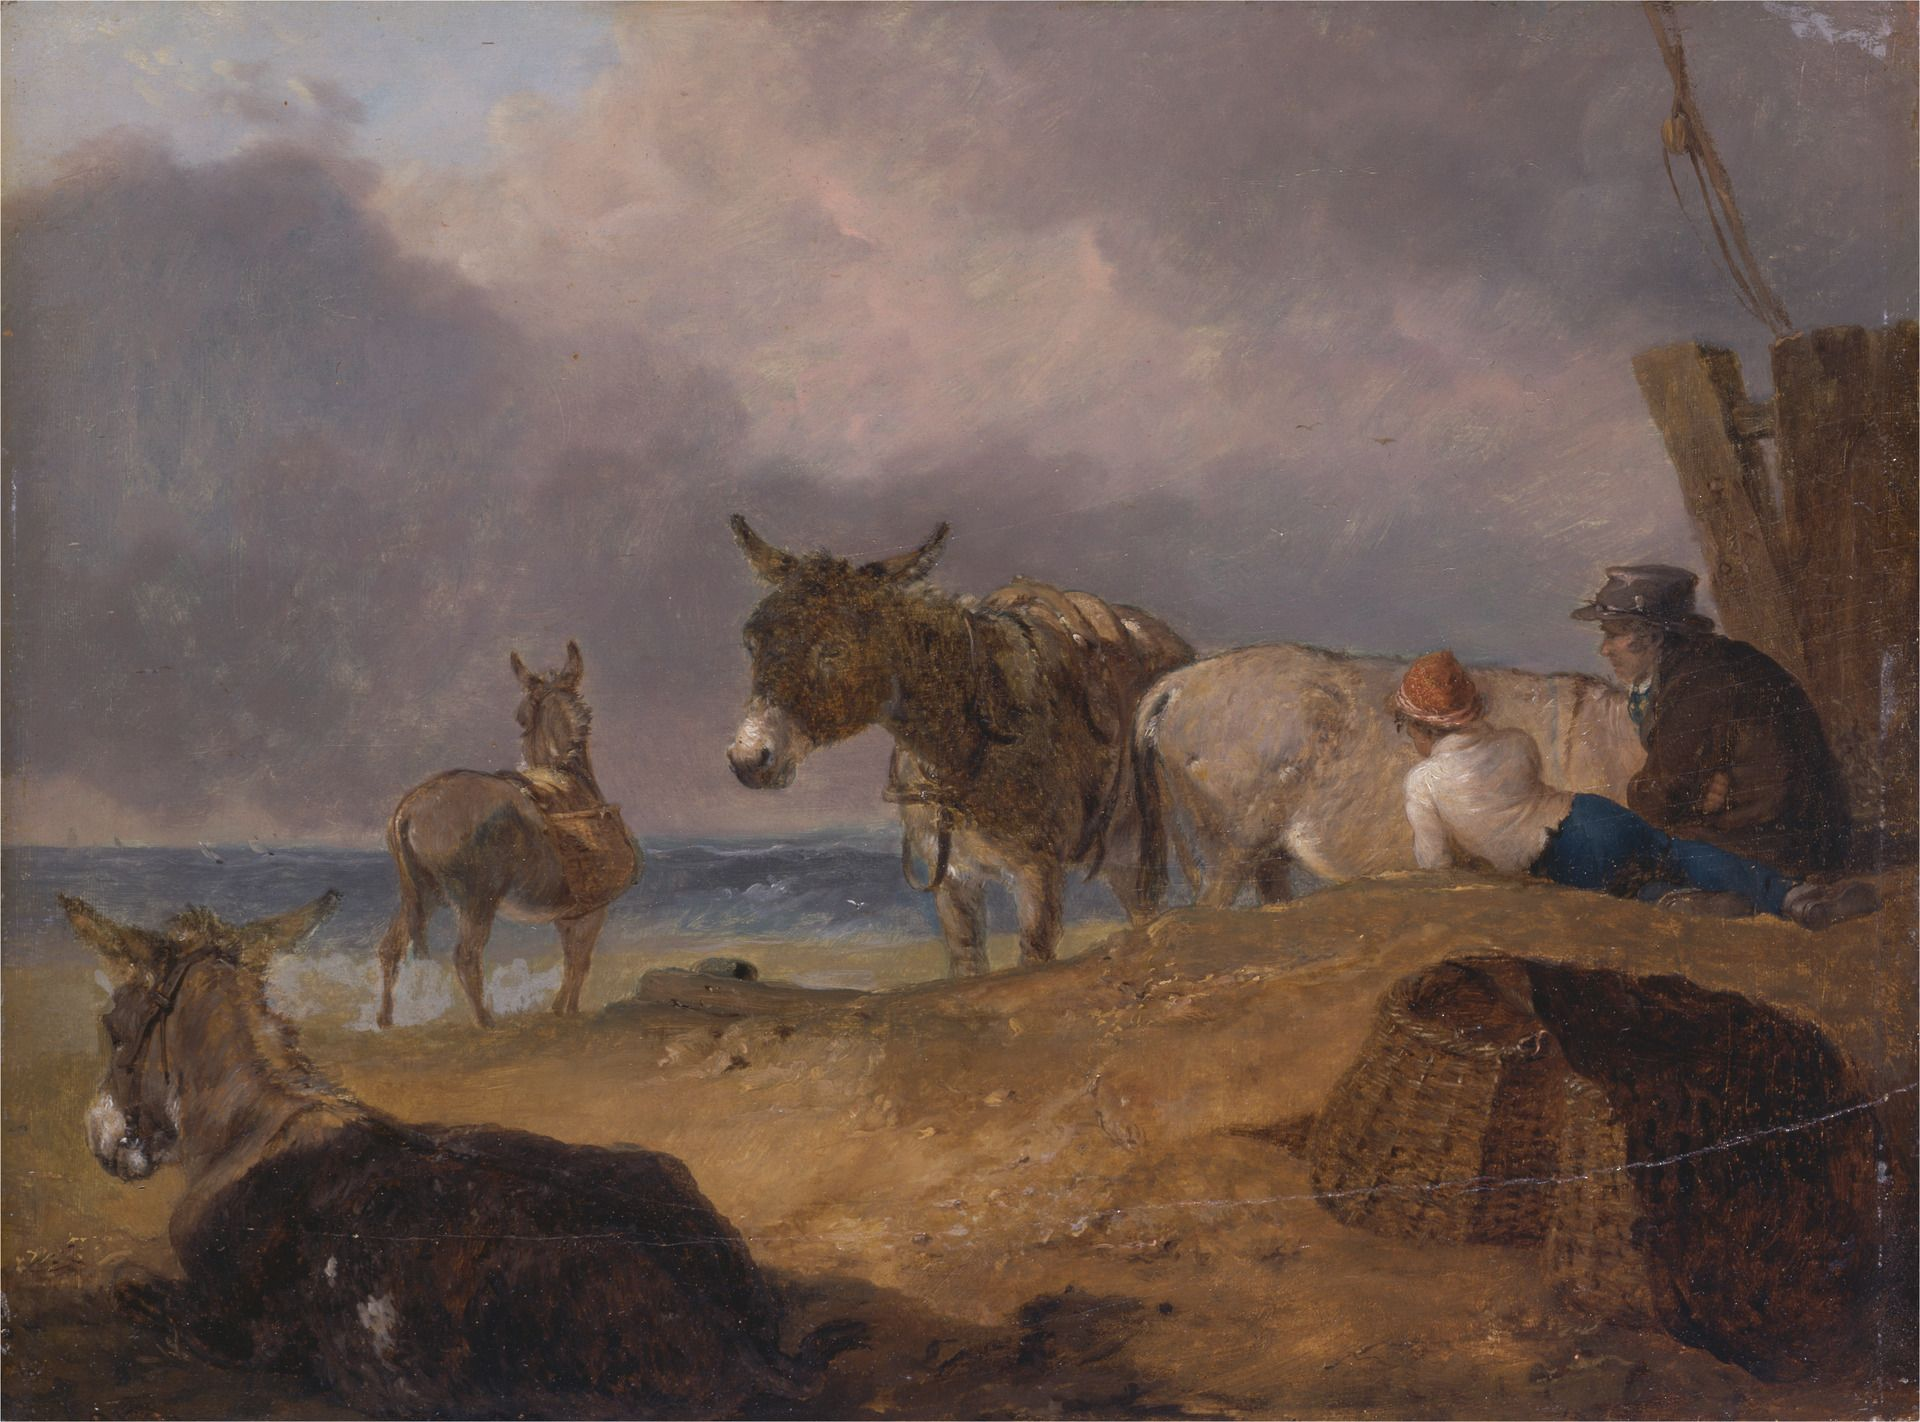 Donkeys and Figures on a Beach | Julius Caesar Ibbetson | Oil Painting